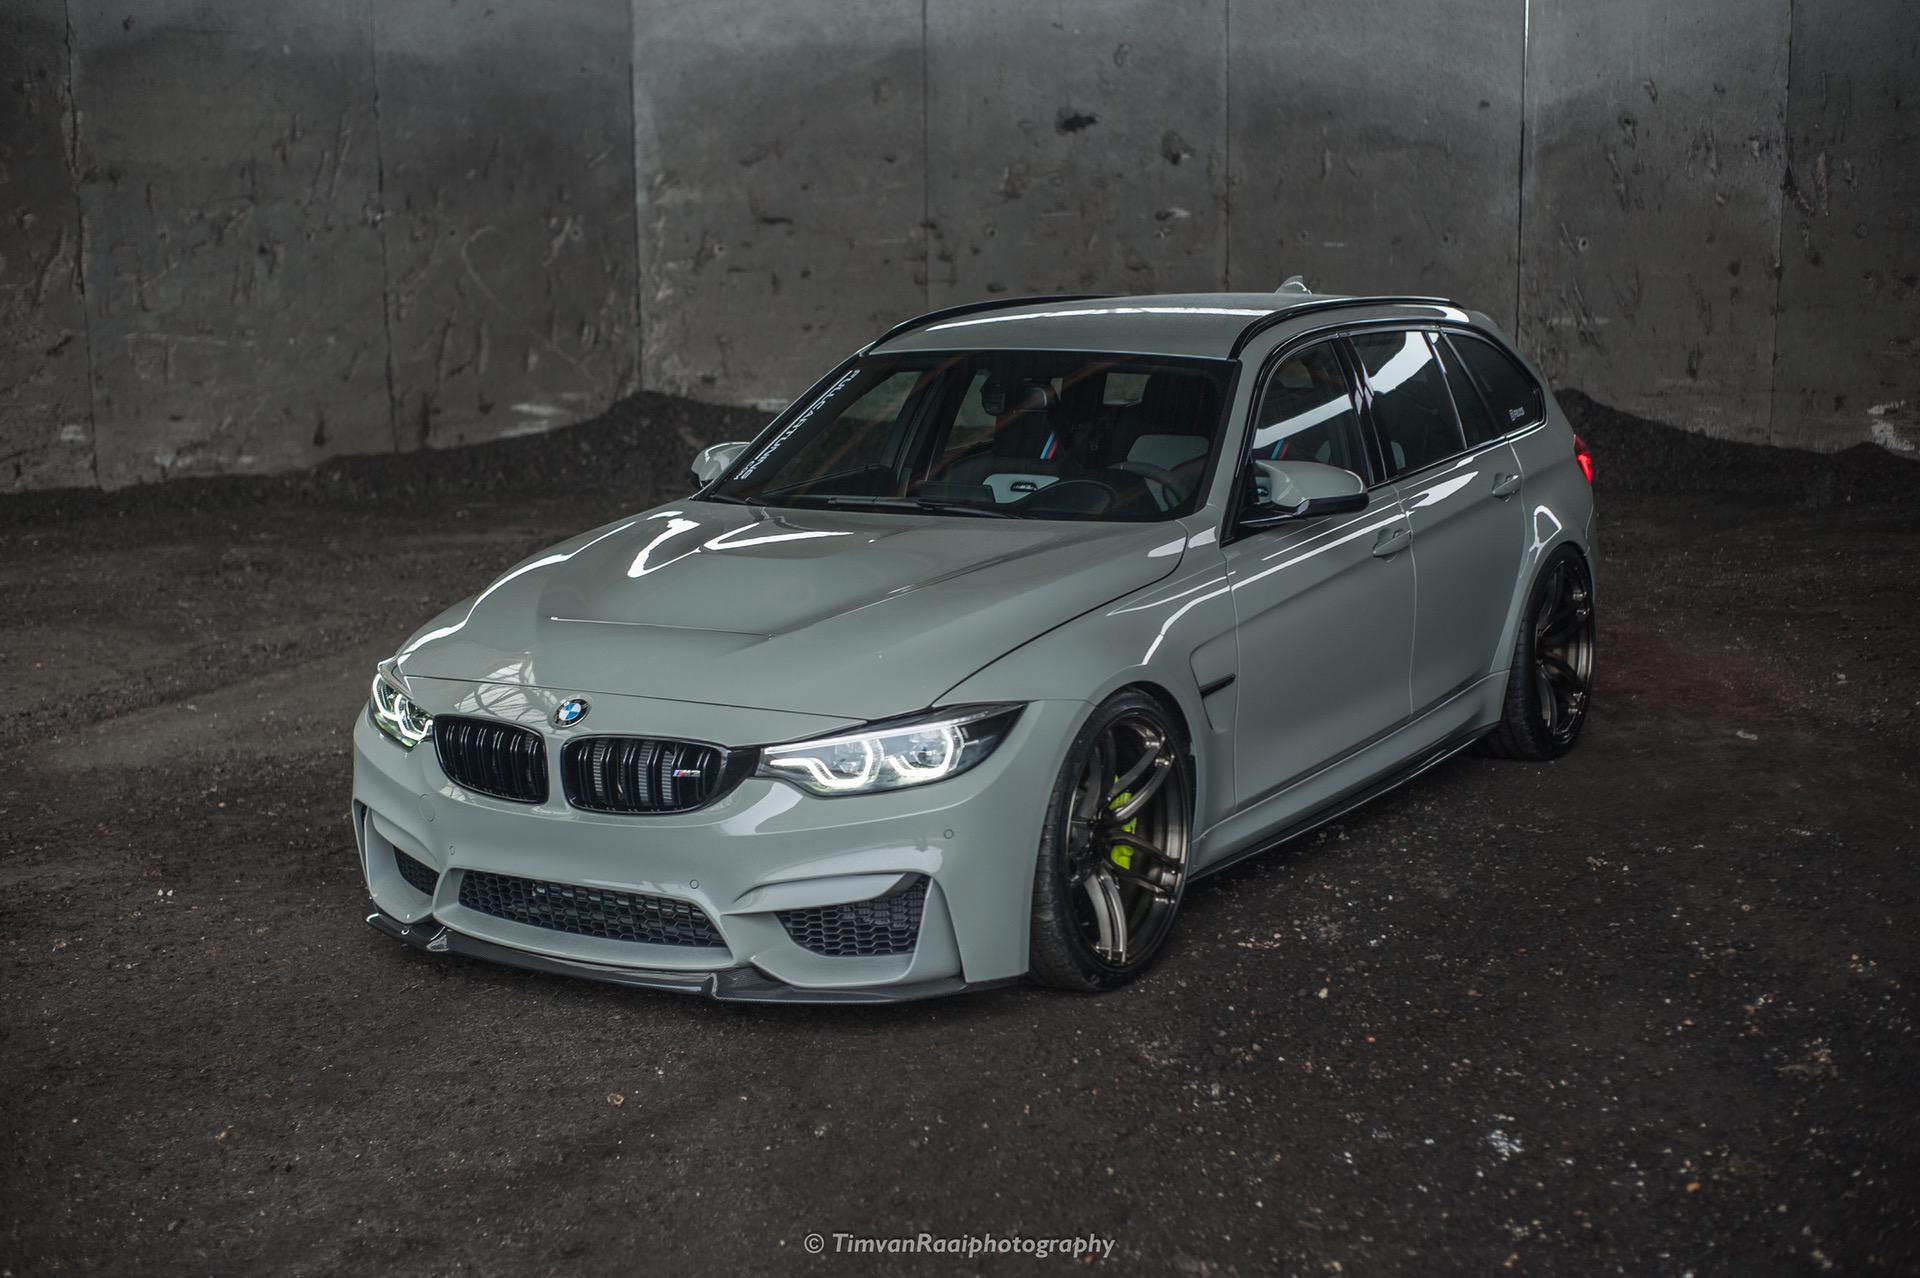 This Bmw M3 Cs Touring F81 Is The Wagon Bmw M Should Ve Built Pistonleaks